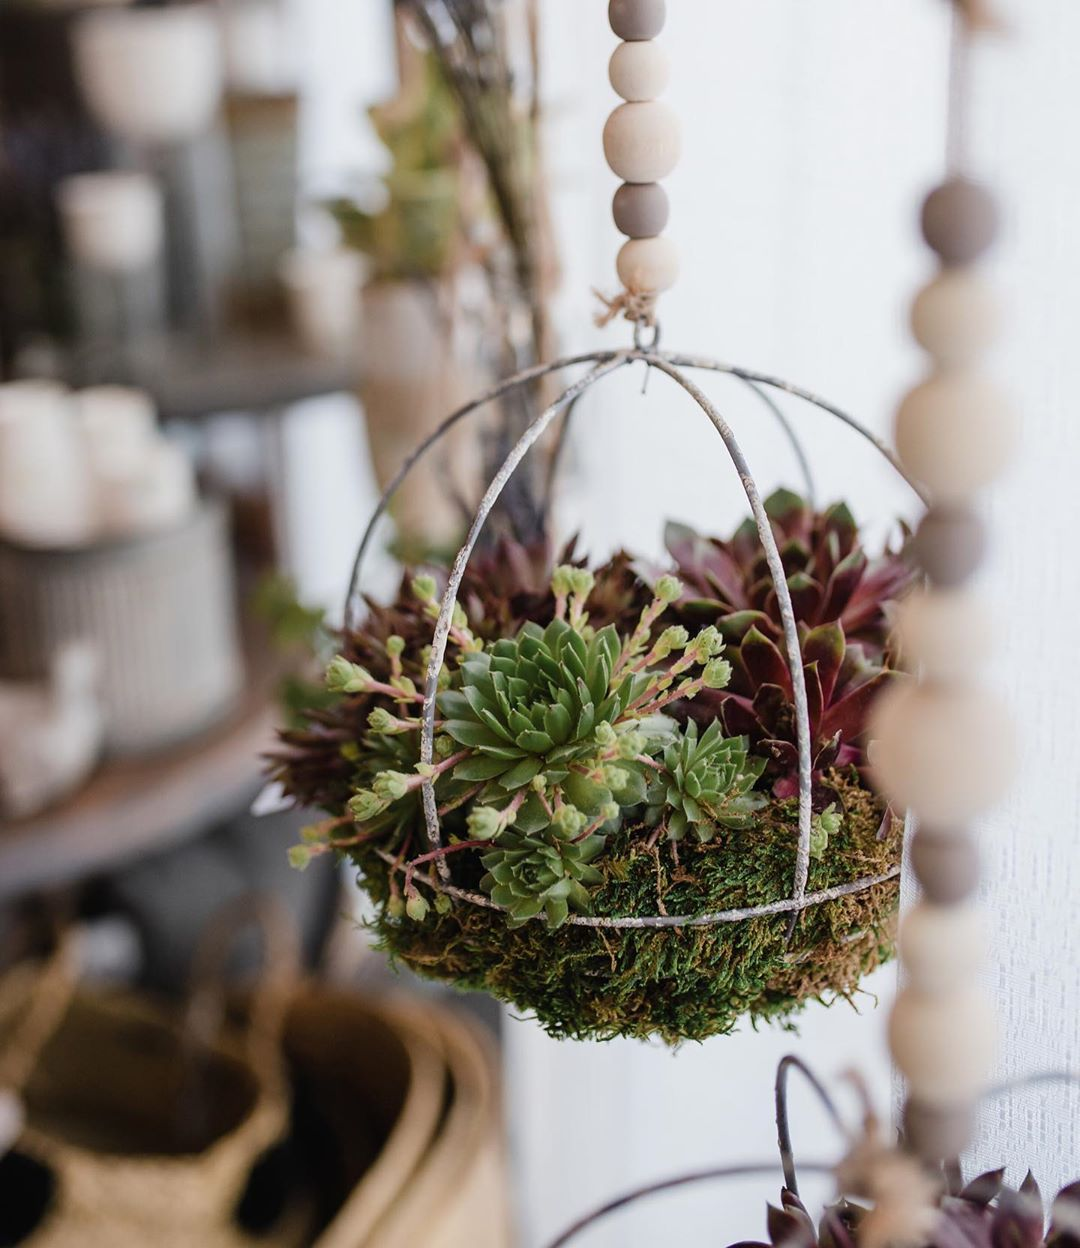 Hanging Basket Garden? Learn How to Make a Hanging Garden